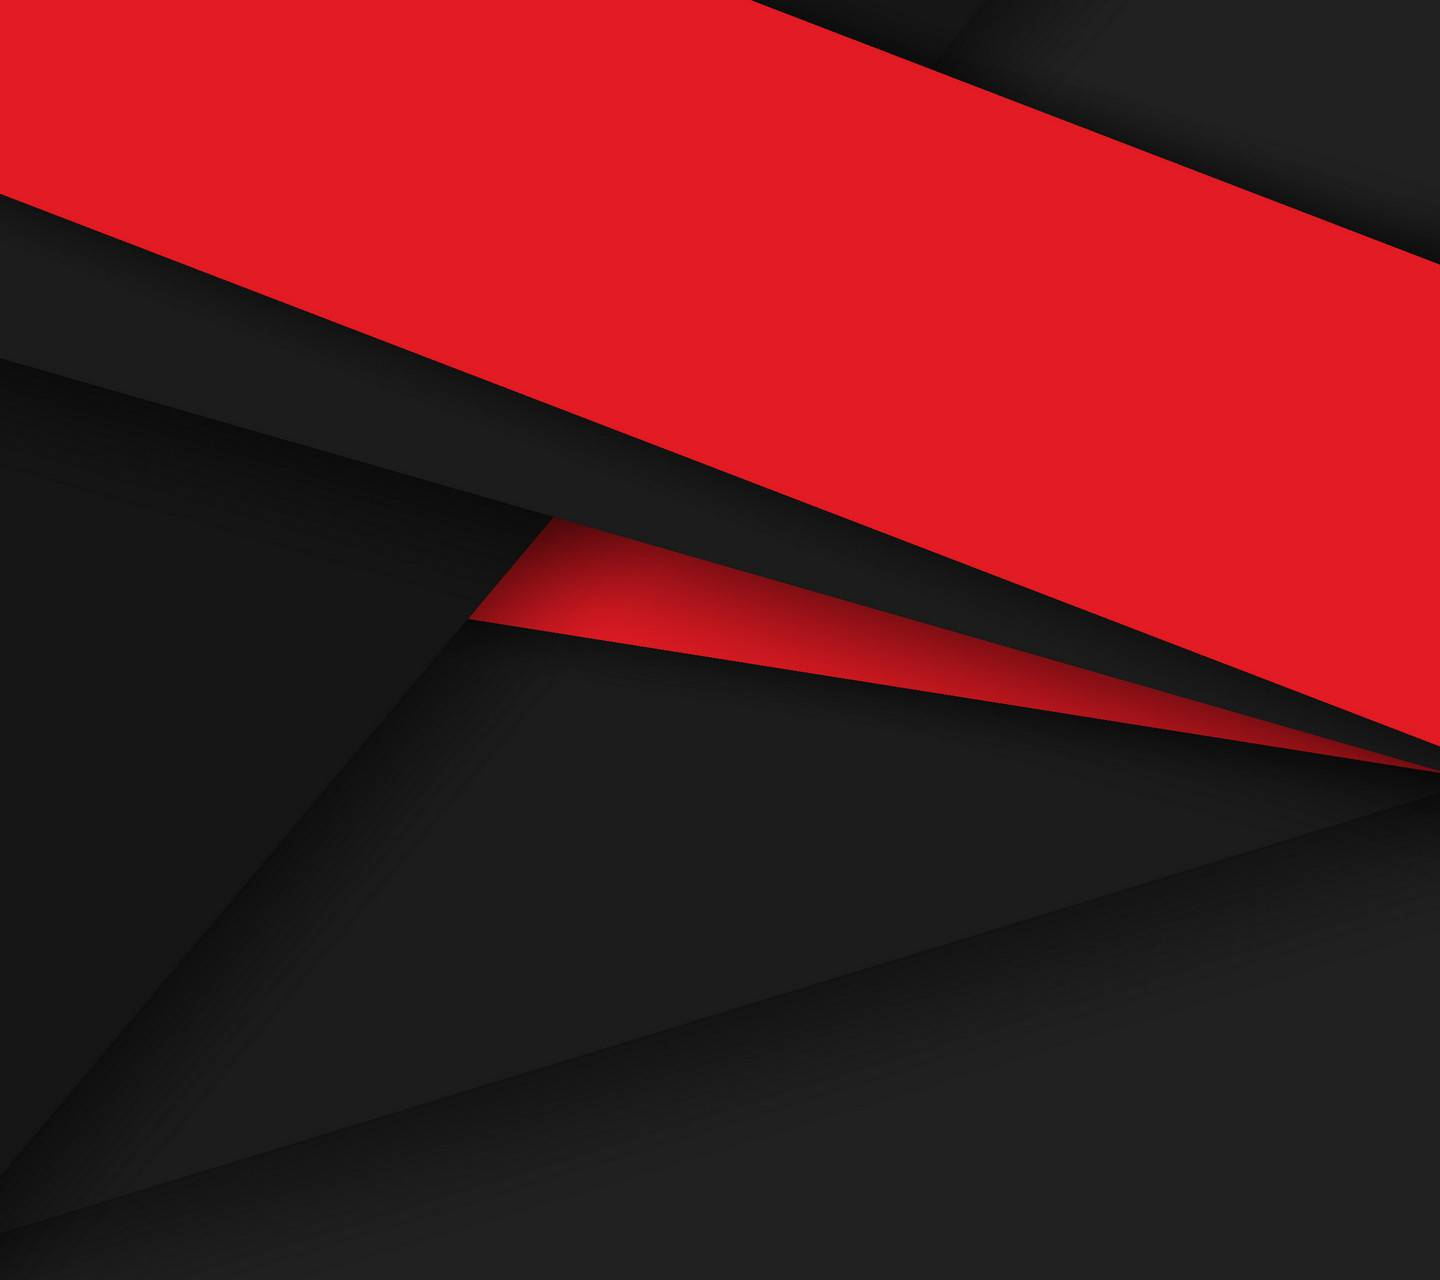 Material Red Black Wallpaper By Zaragil Cd Free On Zedge